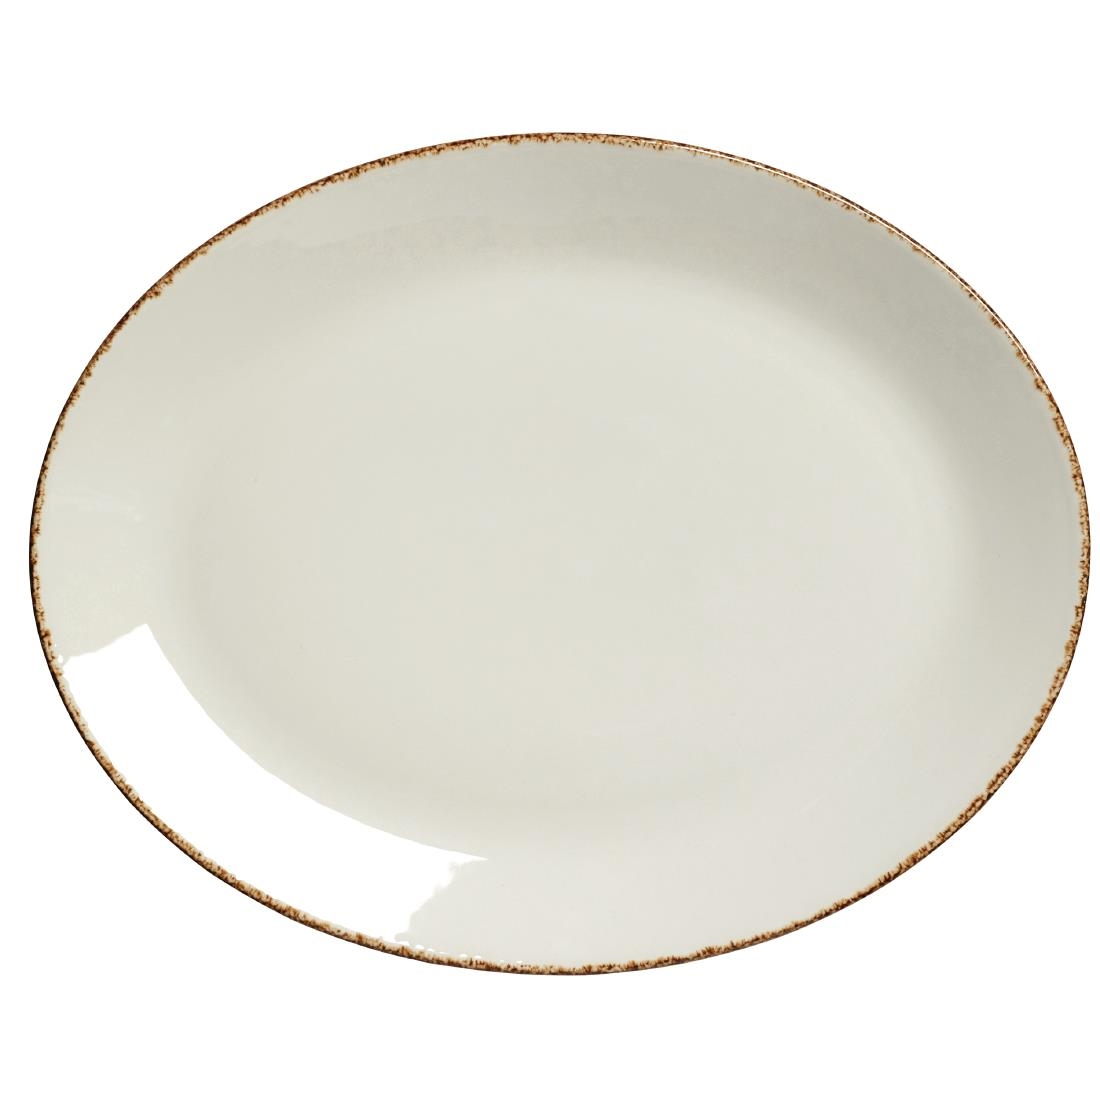 Steelite Brown Dapple Oval Coupe Plates 342mm Pack of 12